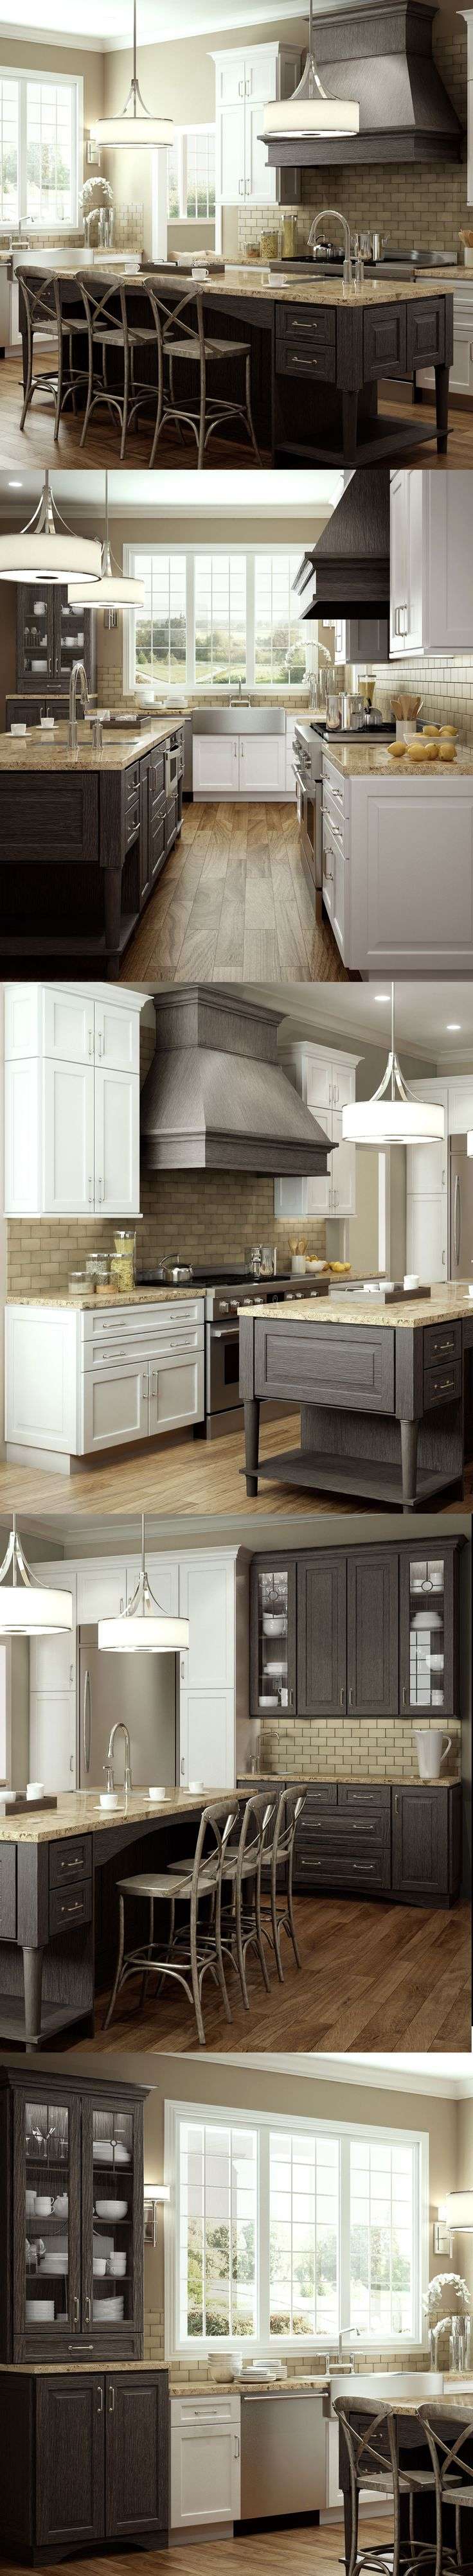 141 best Dramatic Cabinetry images on Pinterest